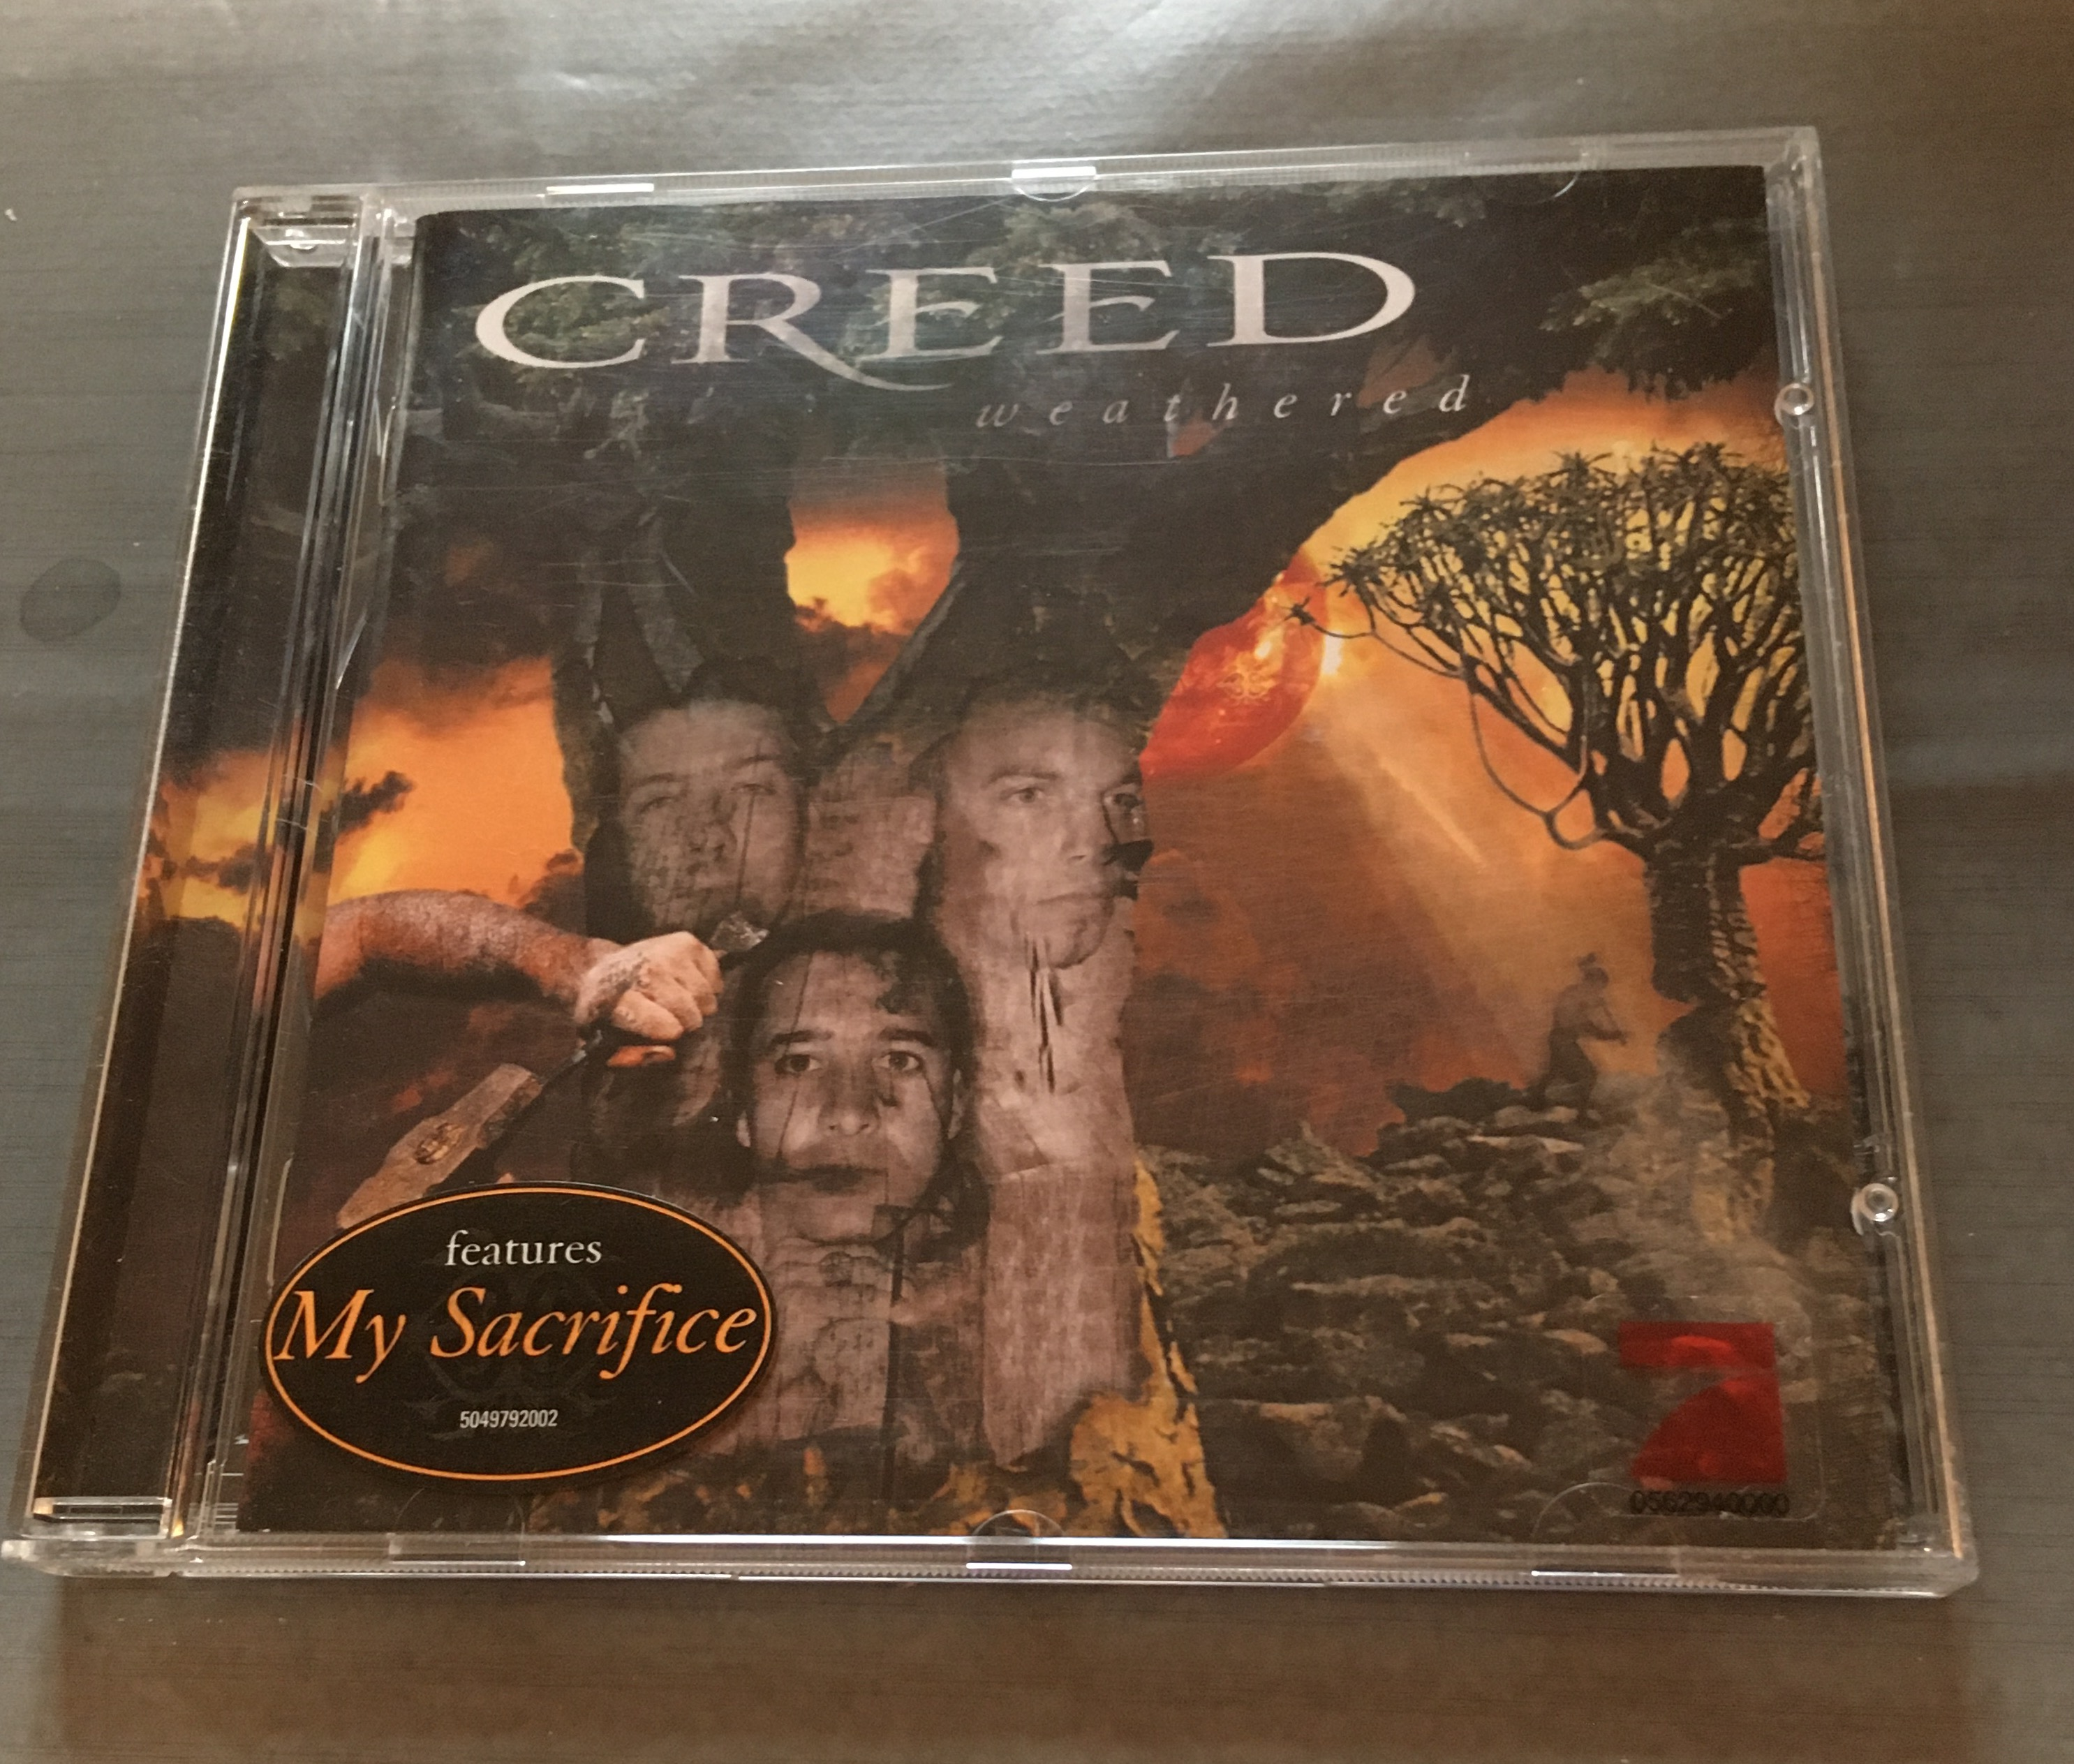 CD Creed - Weathered kostenlos